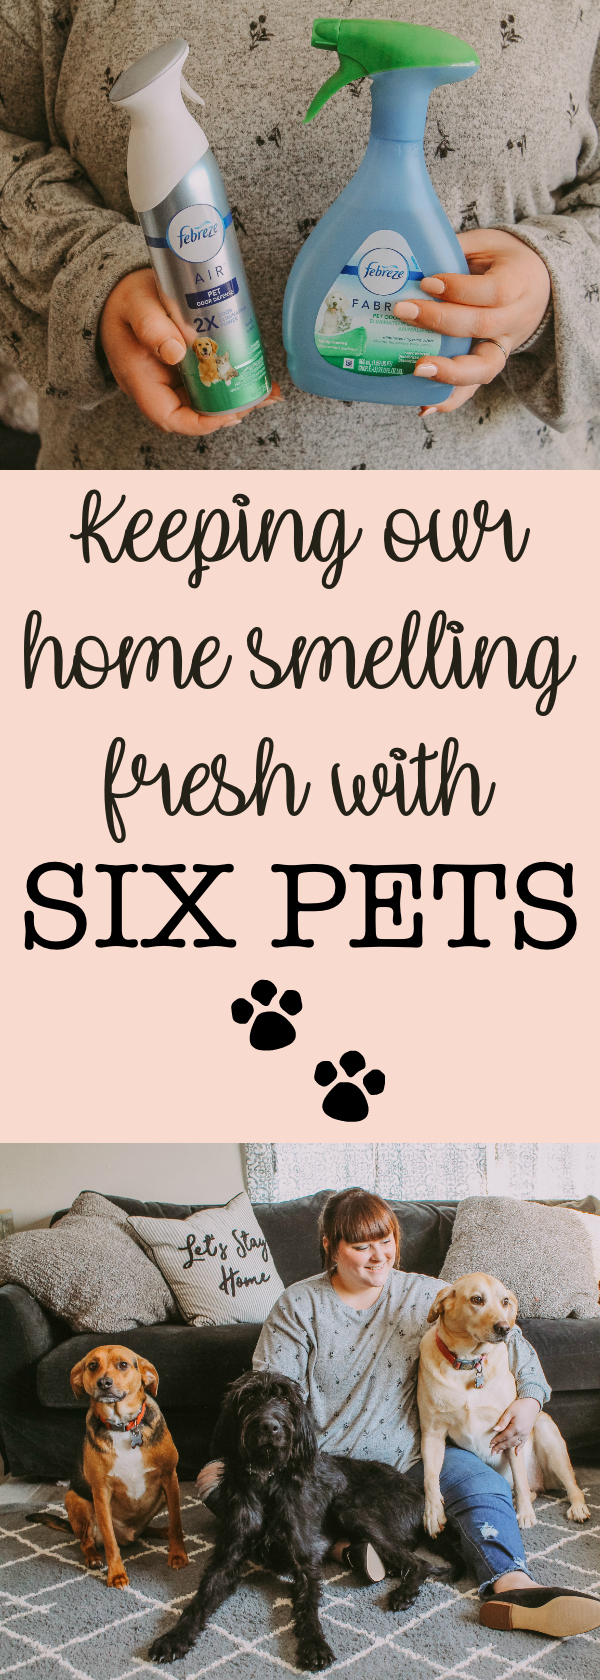 Keeping Our Home Smelling Fresh with Six Pets